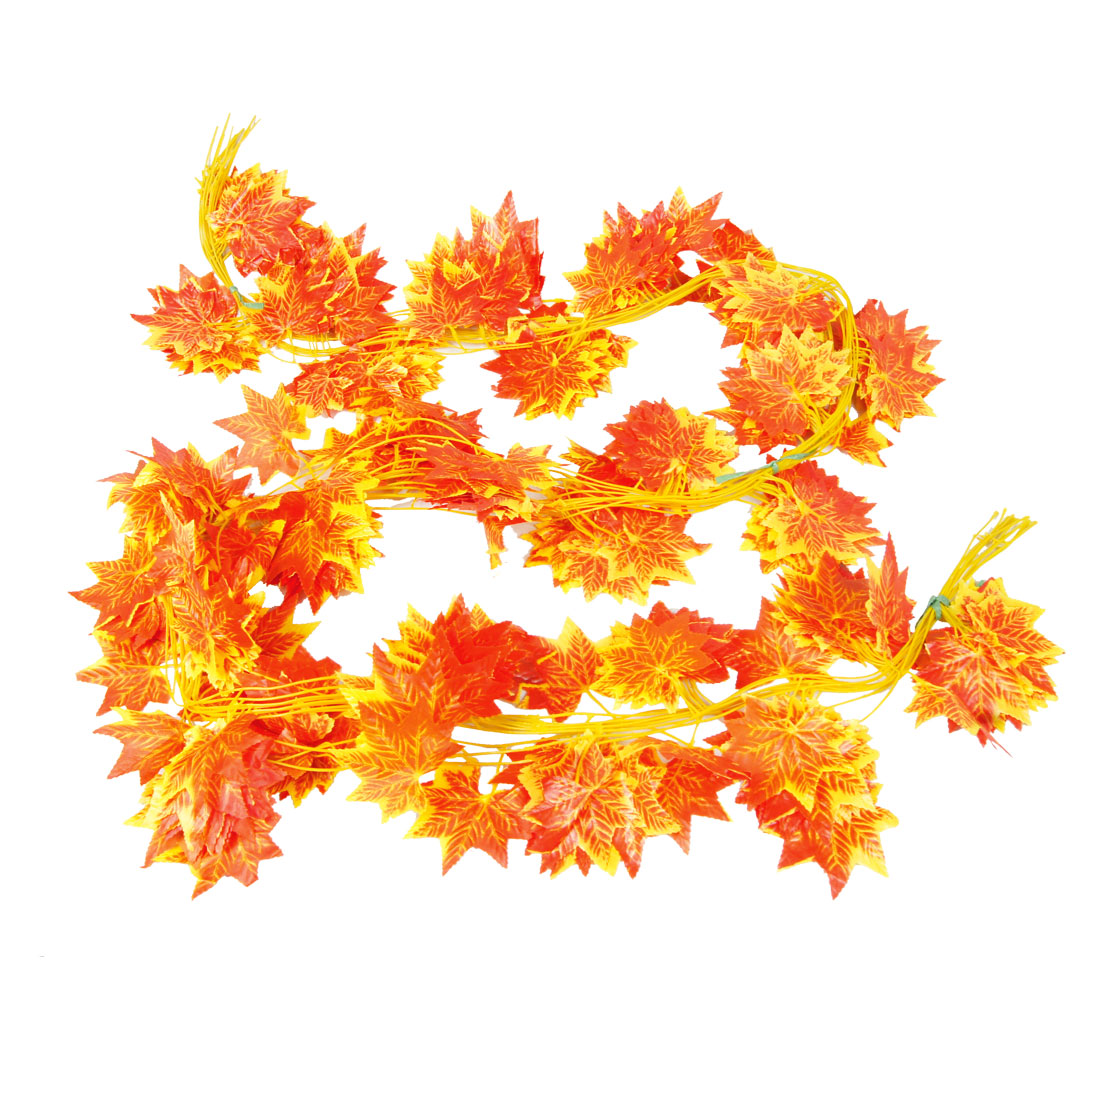 12 Pcs Home Room Detail Red Orange Artificial Maple Leaf Ivy 2.2M